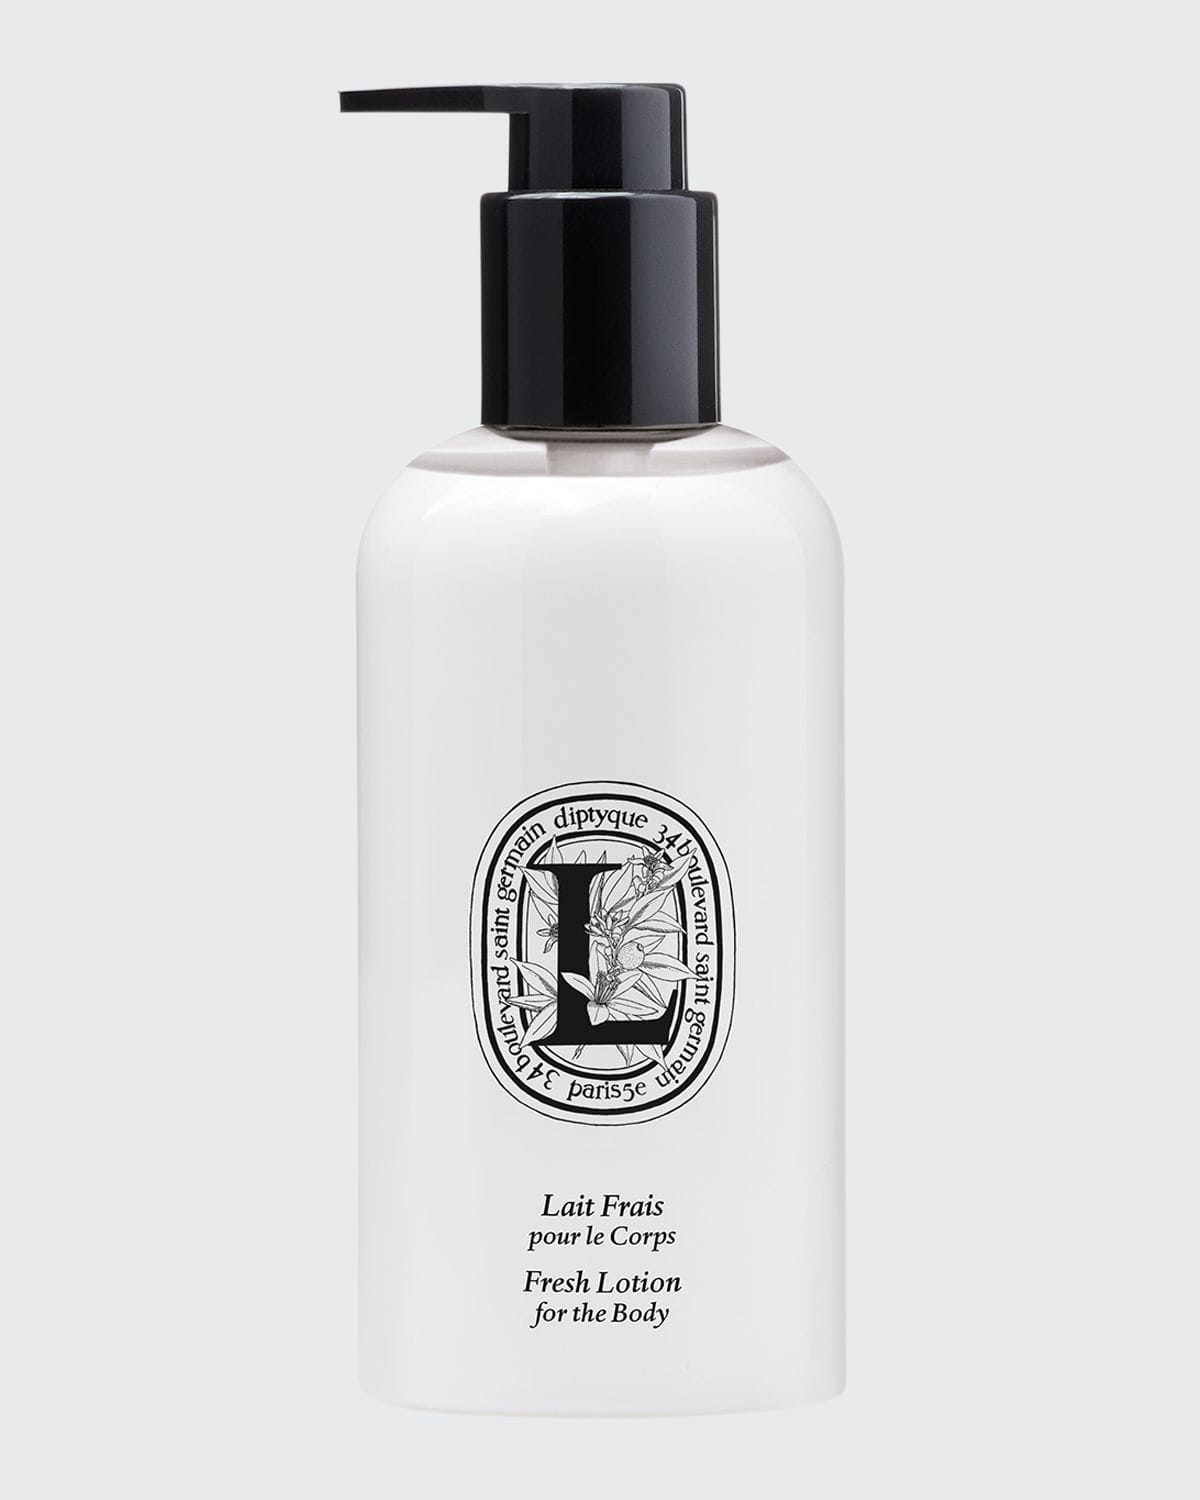 8.5 oz. Fresh Lotion for the Body